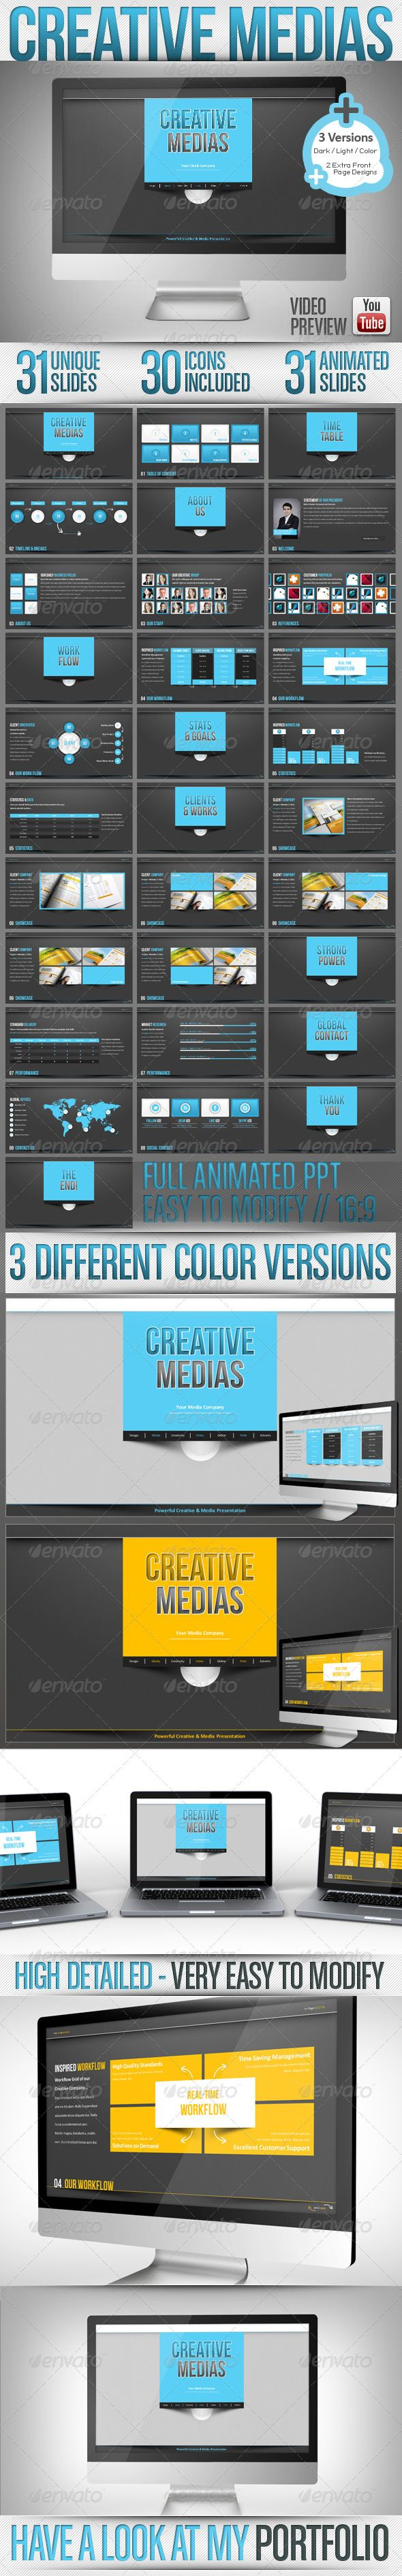 Creative Media - Powerpoint Dark & Light / Full HD Get the source files for download: http://graphicriver.net/item/creative-media-powerpoint-dark-light-full-hd/3396500